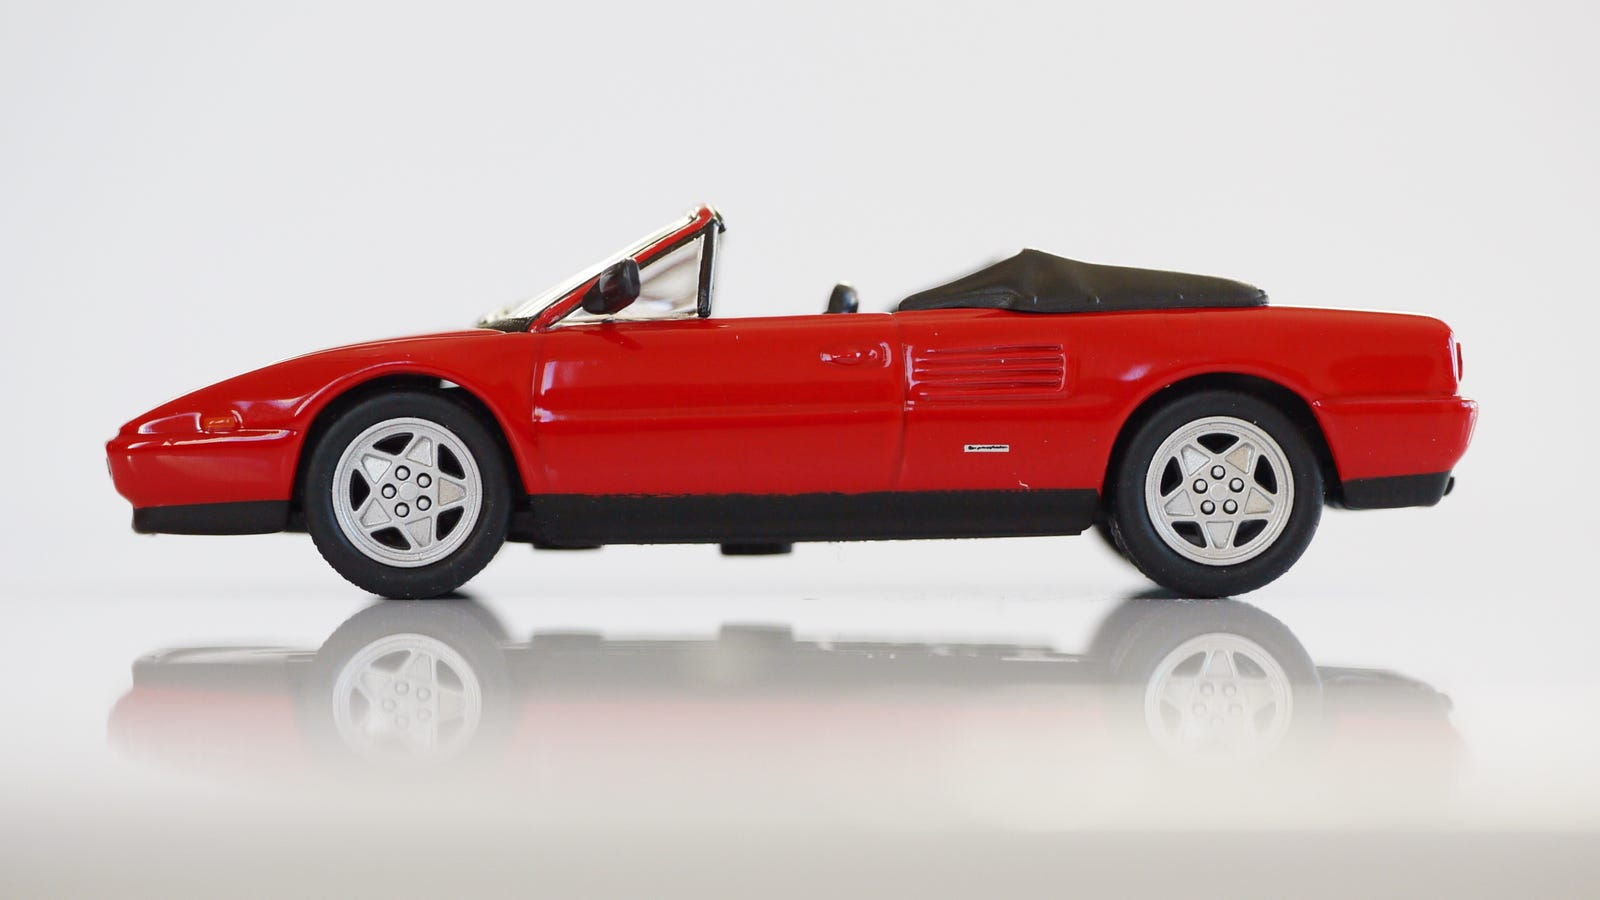 kyosho ferrari 5 1 64 24 project prancing horse 24 1989 ferrari mondial t cabrio. Black Bedroom Furniture Sets. Home Design Ideas